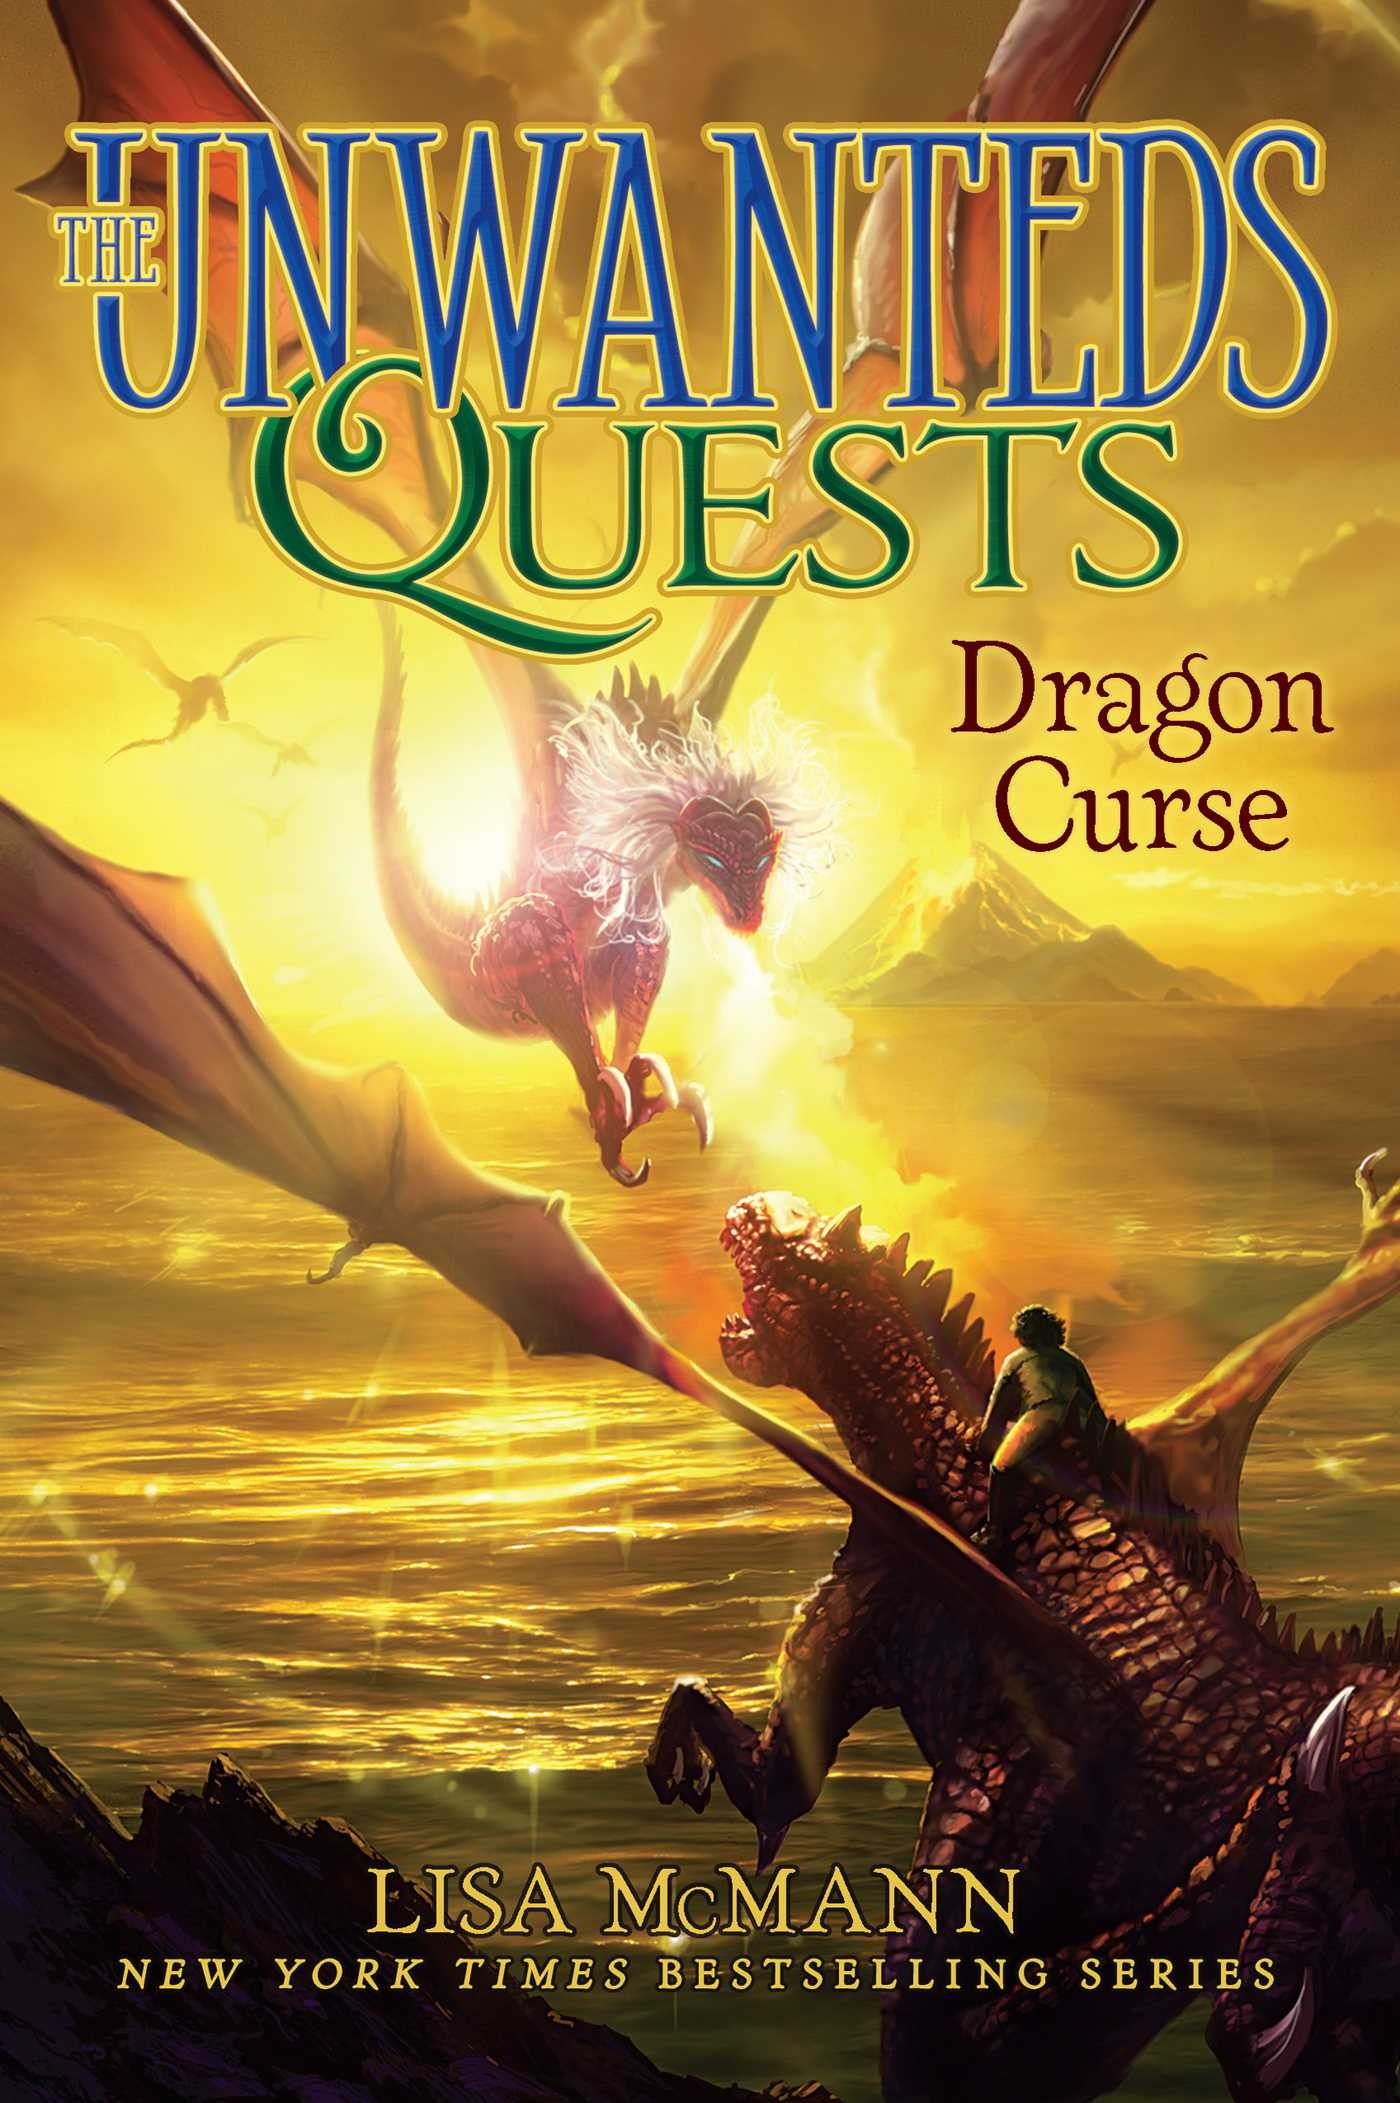 Dragon Curse (The Unwanteds Quests, #4)